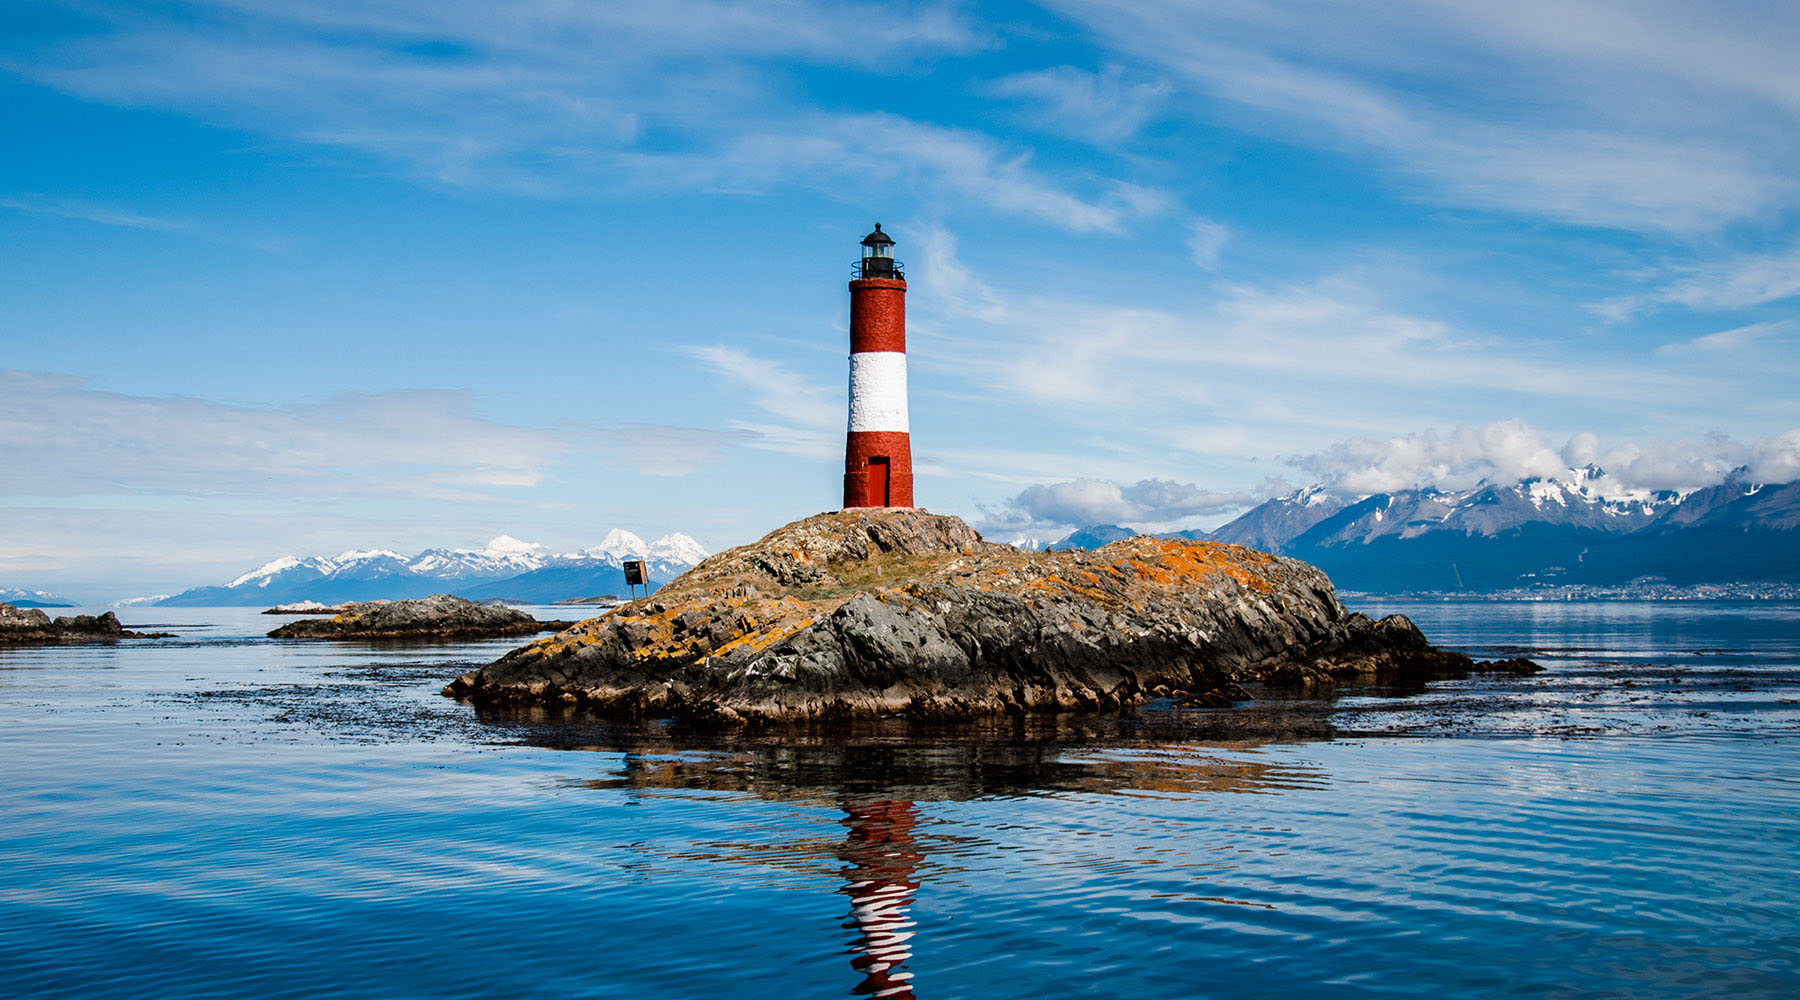 Beagle Channel, Argentina Cruises